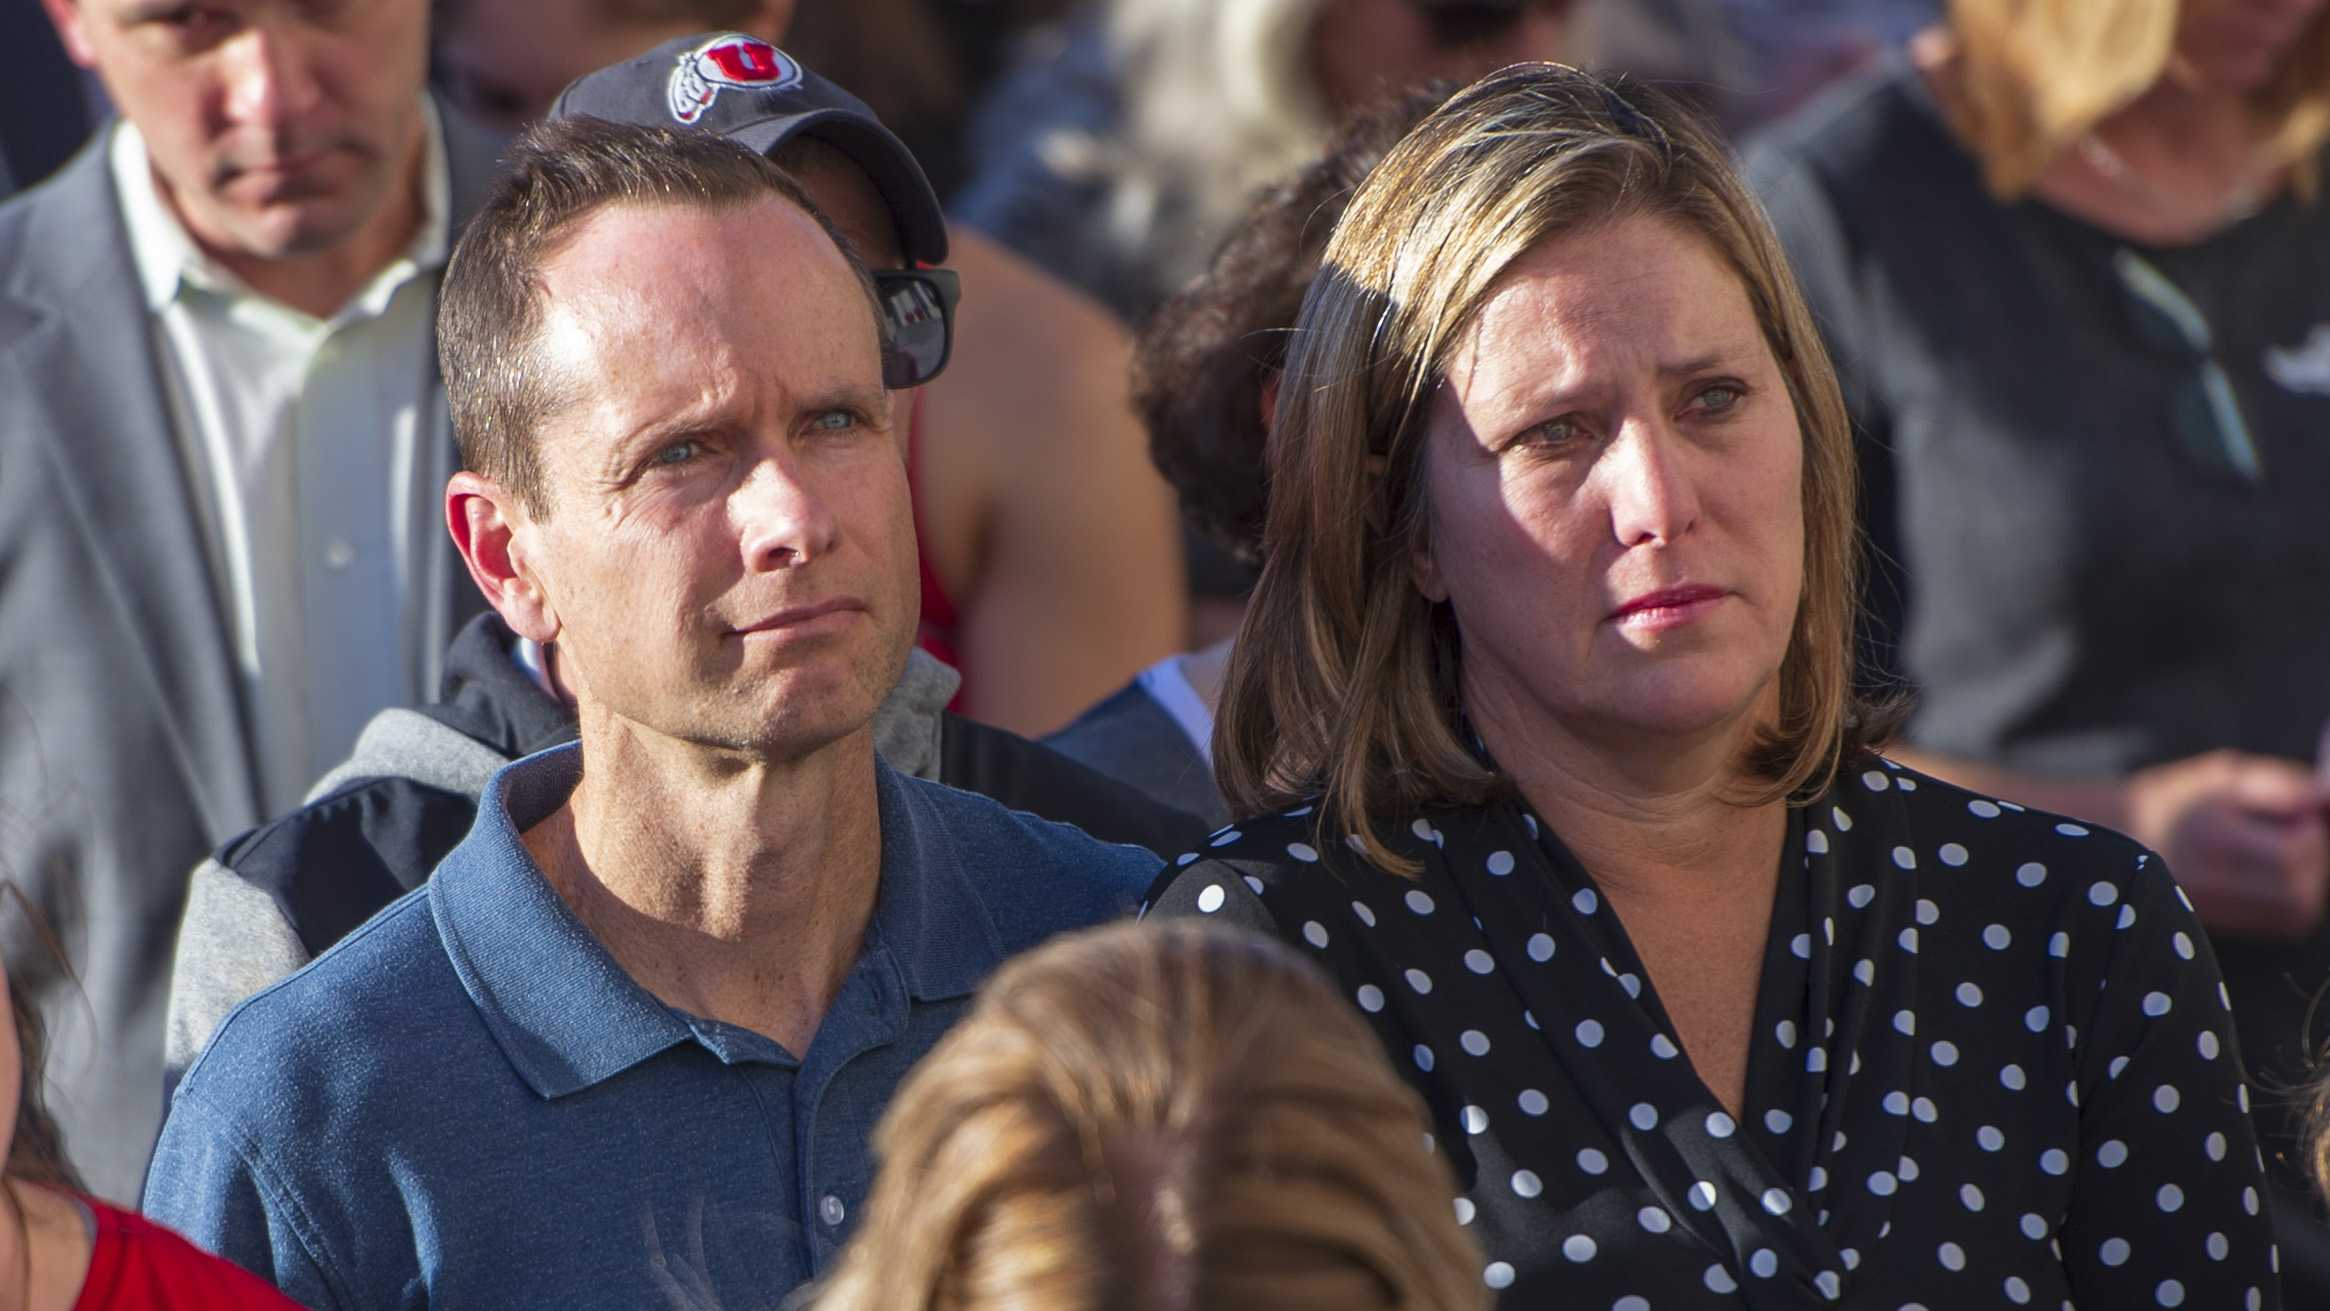 Lauren's parents, Jill and Matthew McCluskey, students, staff, family and friends attend a vigil on the steps of the Park Building for Lauren McCluskey who was tragically killed on campus at The University of Utah in Salt Lake City, Utah on Wednesday, Oct. 24, 2018. (Photo by Kiffer Creveling | The Daily Utah Chronicle)